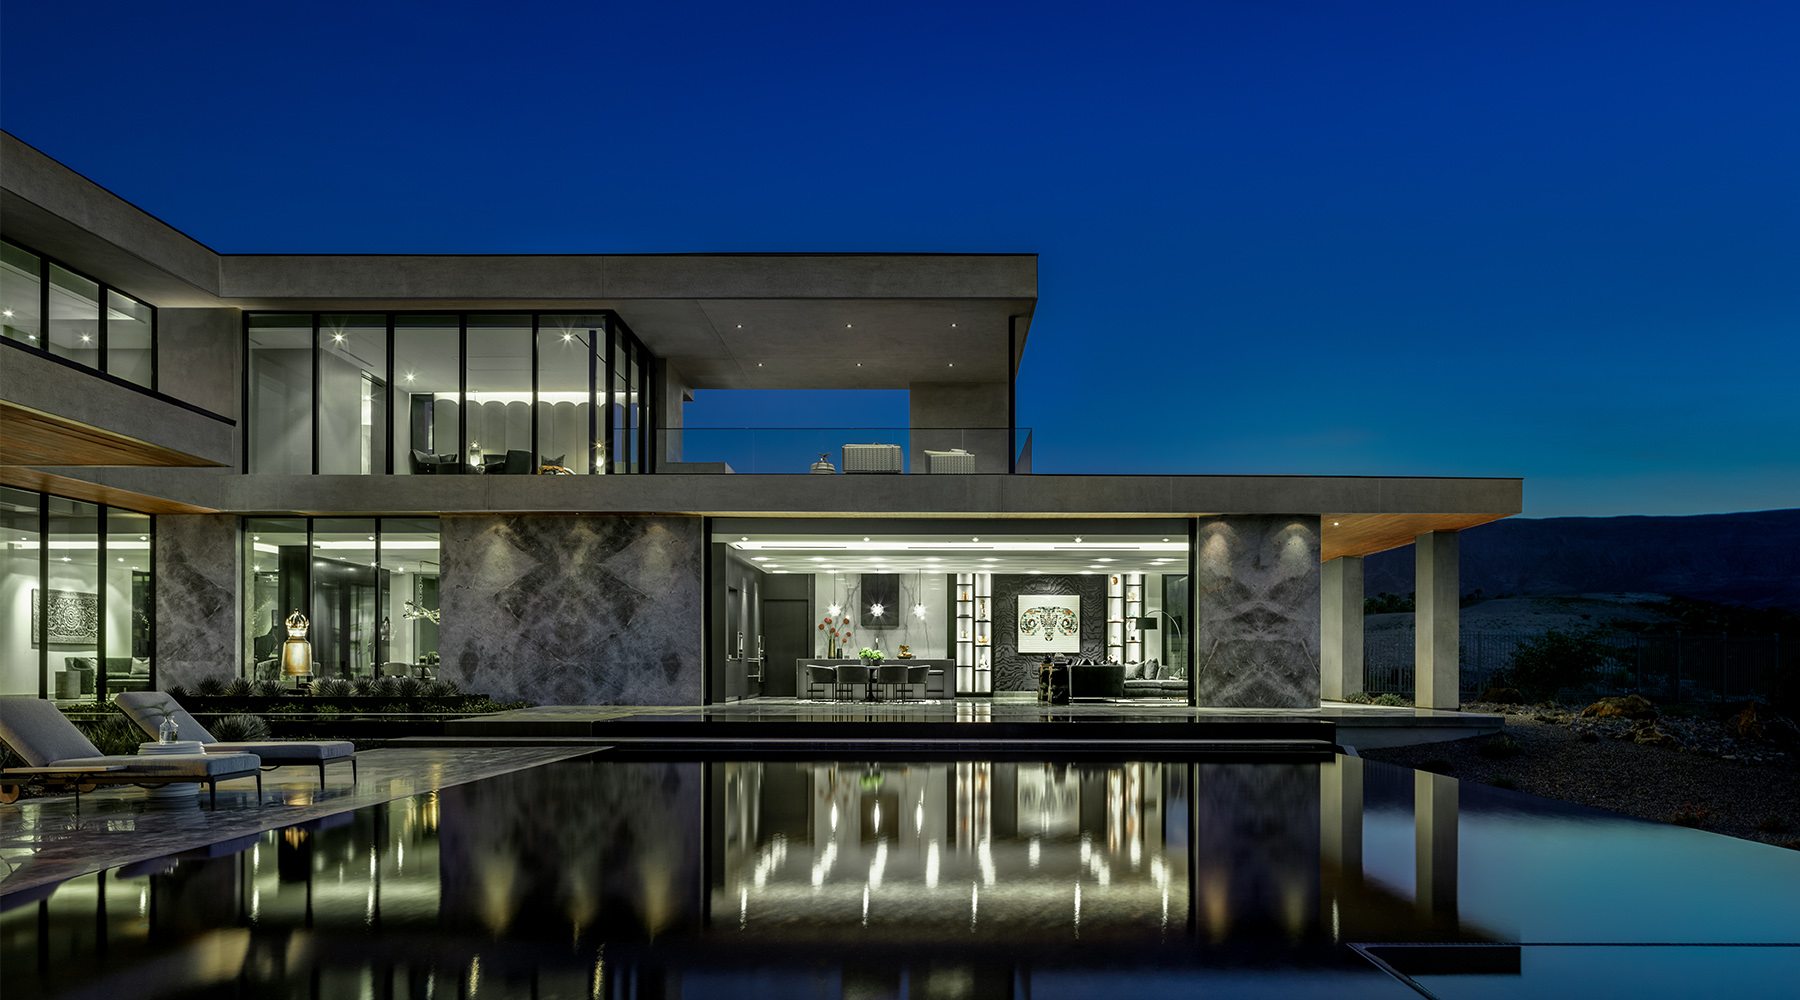 Deseret_Escape_Project_featured img_1800x1000